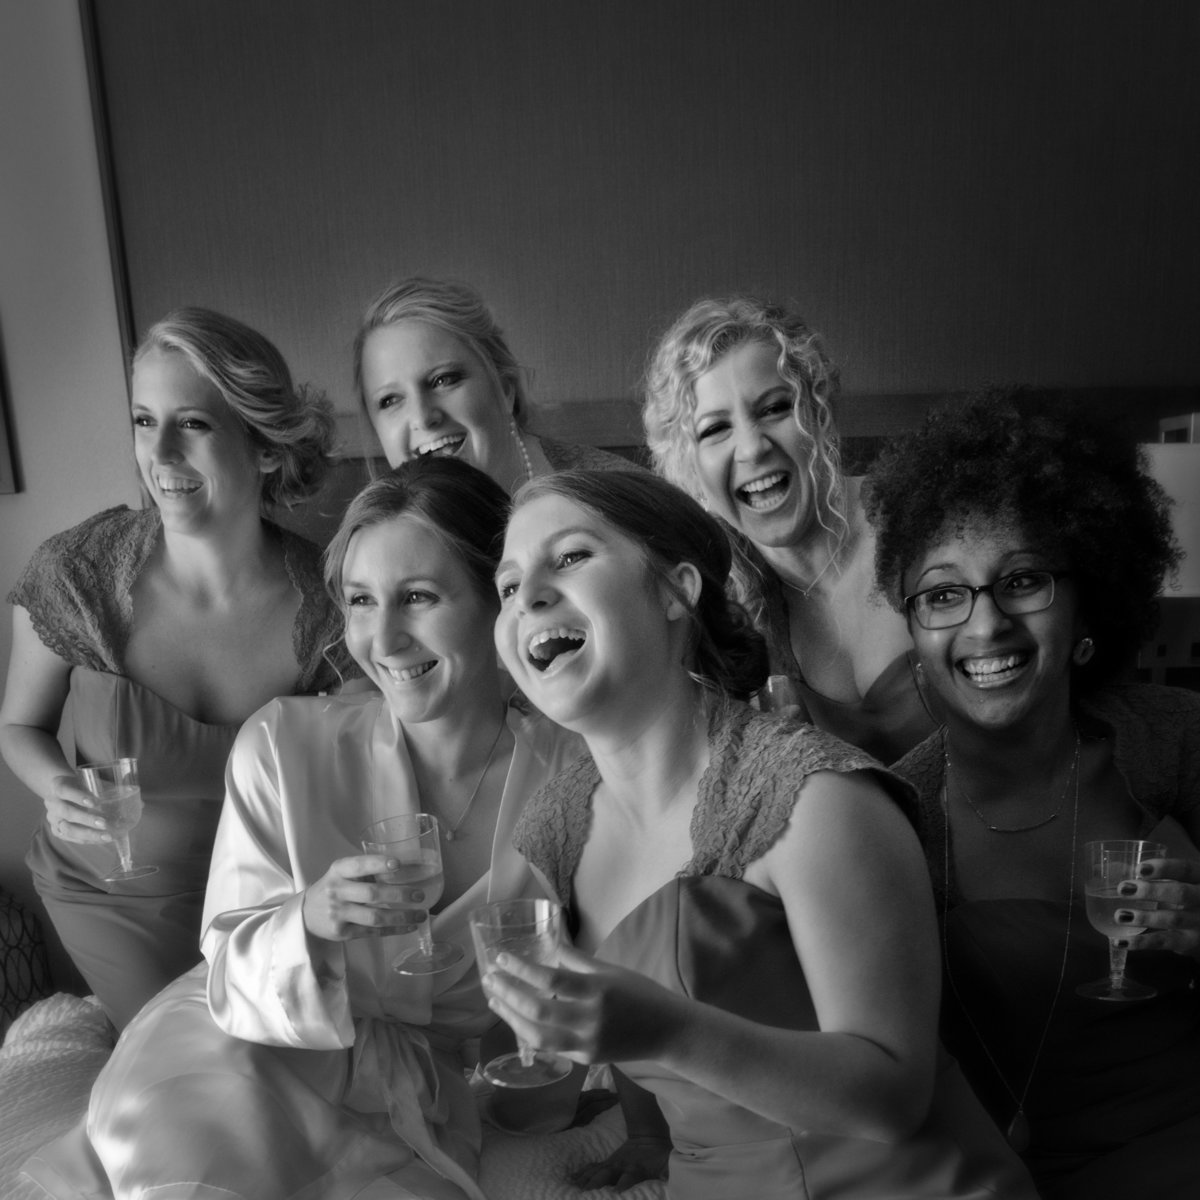 Black and White Wedding Photography by Washington DC Wedding Photographer, Erin Tetterton Photography